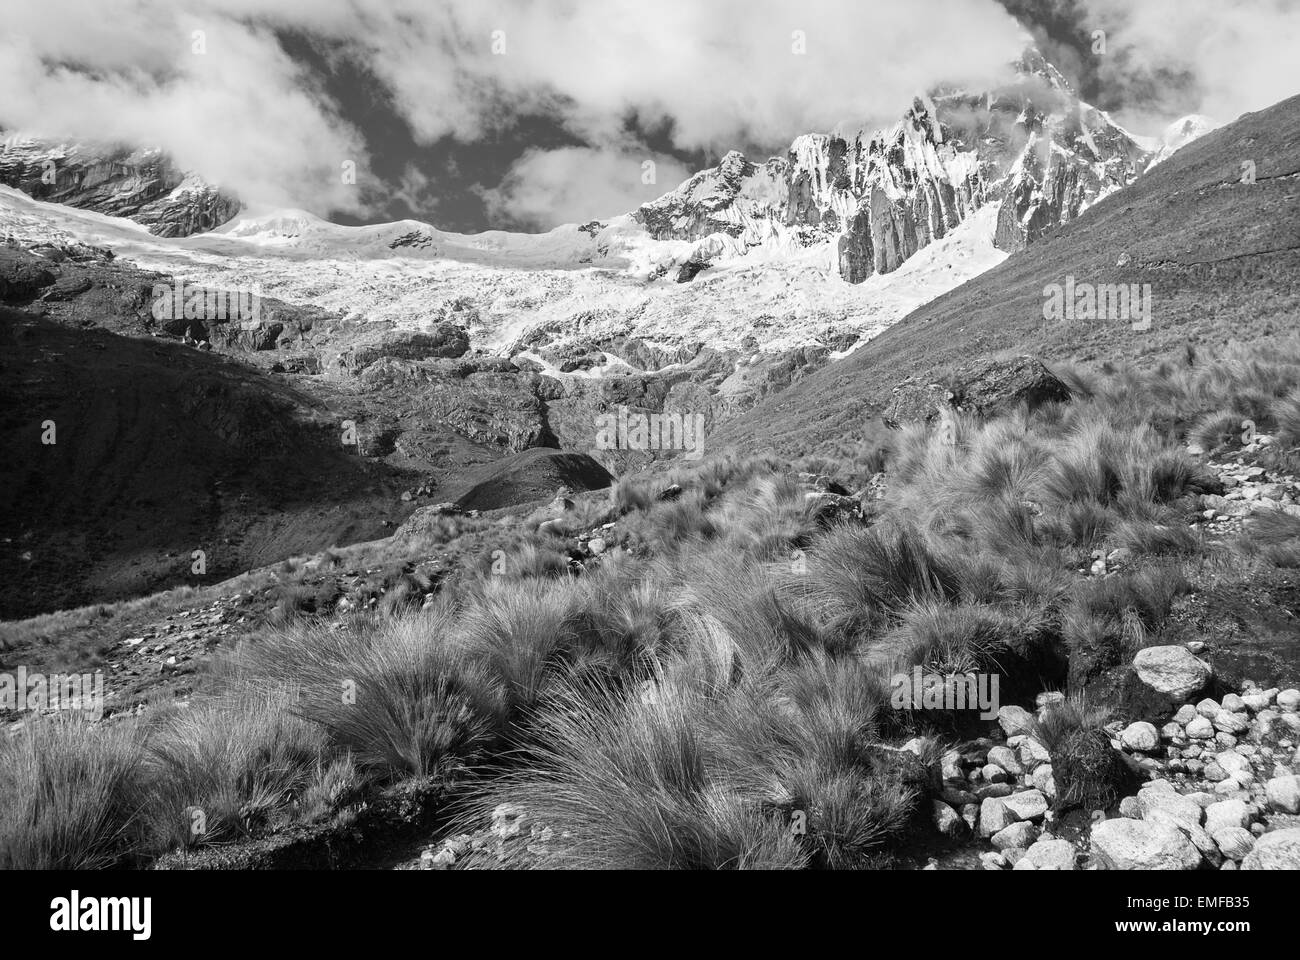 Peru - Tawllirahu peak (hispanicized spelling Taulliraju - 5,830) in Cordillera Blanca in the Andes from the trek - Stock Image